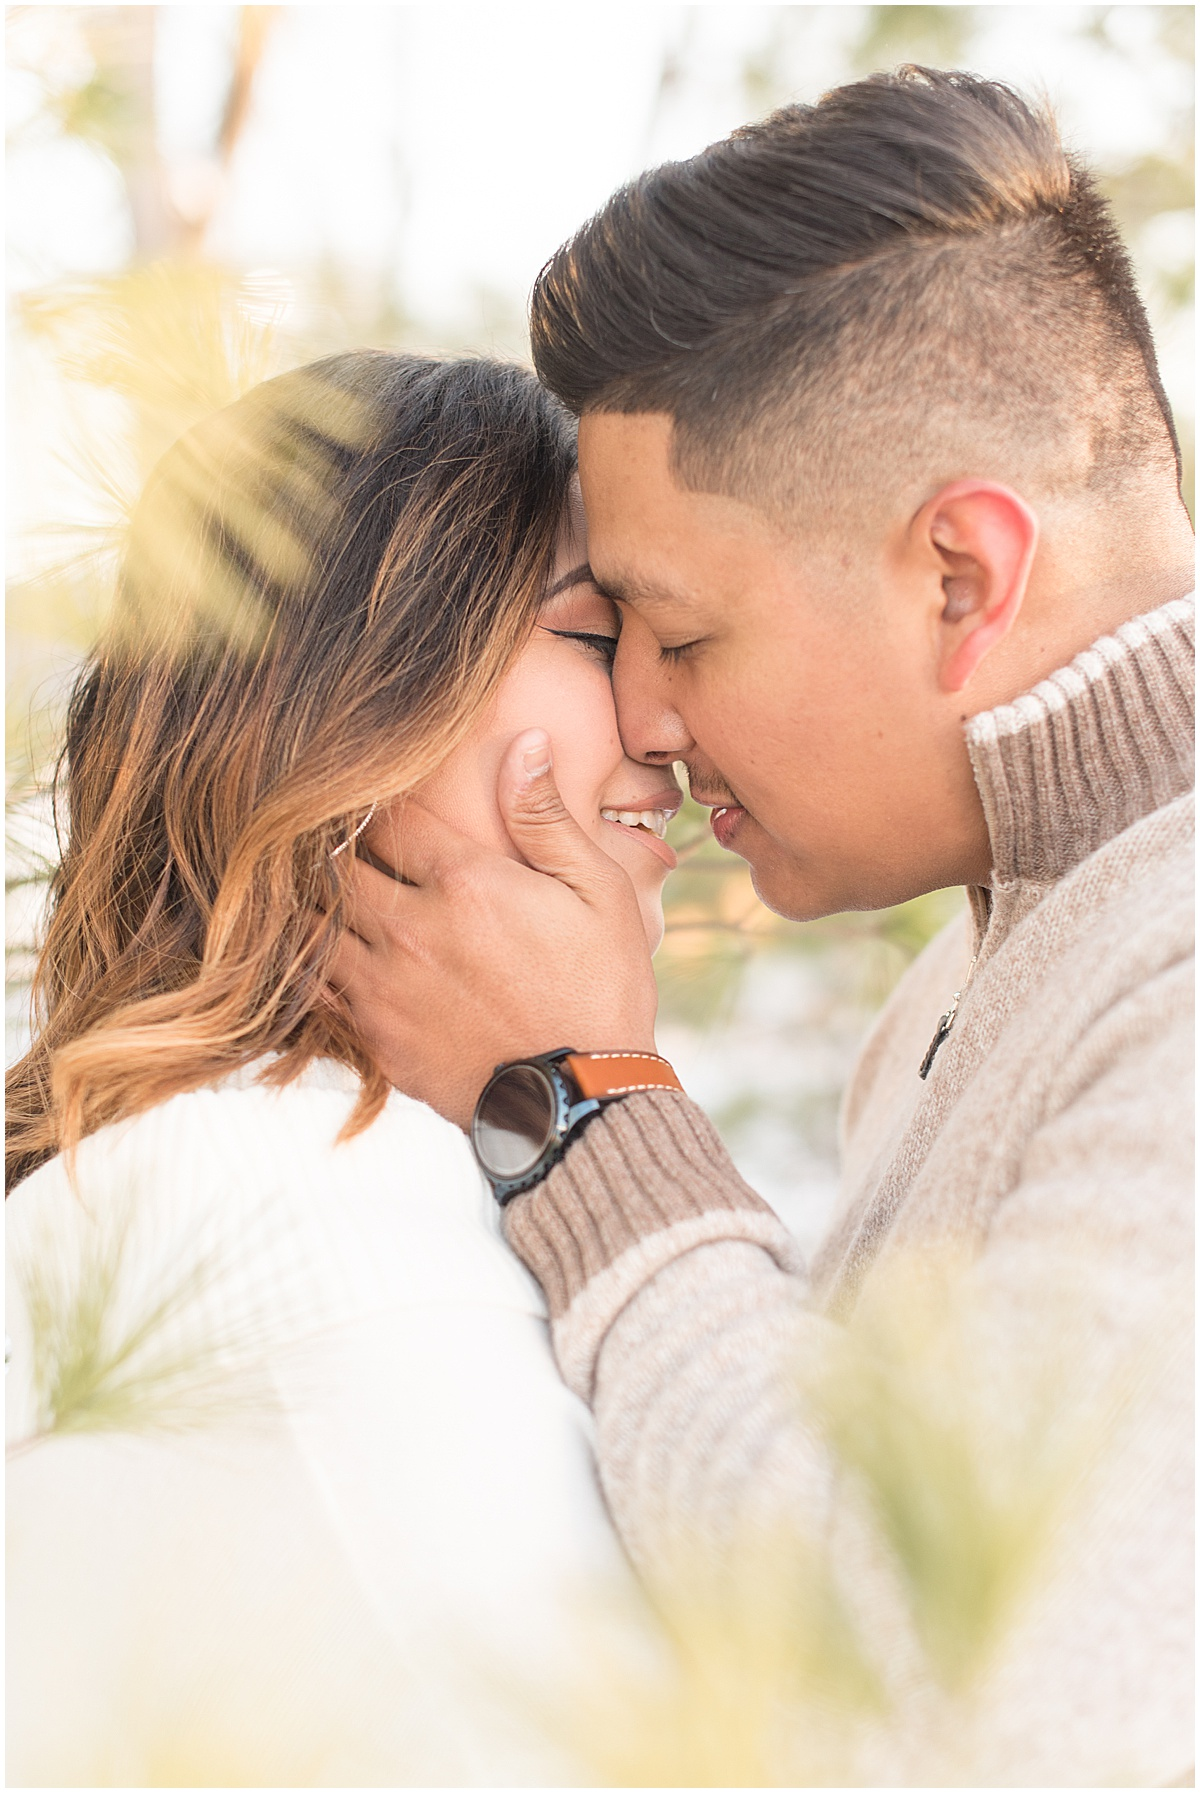 Jose & Carolina - Engagement Photos in Downtown Lafayette Indiana11.jpg